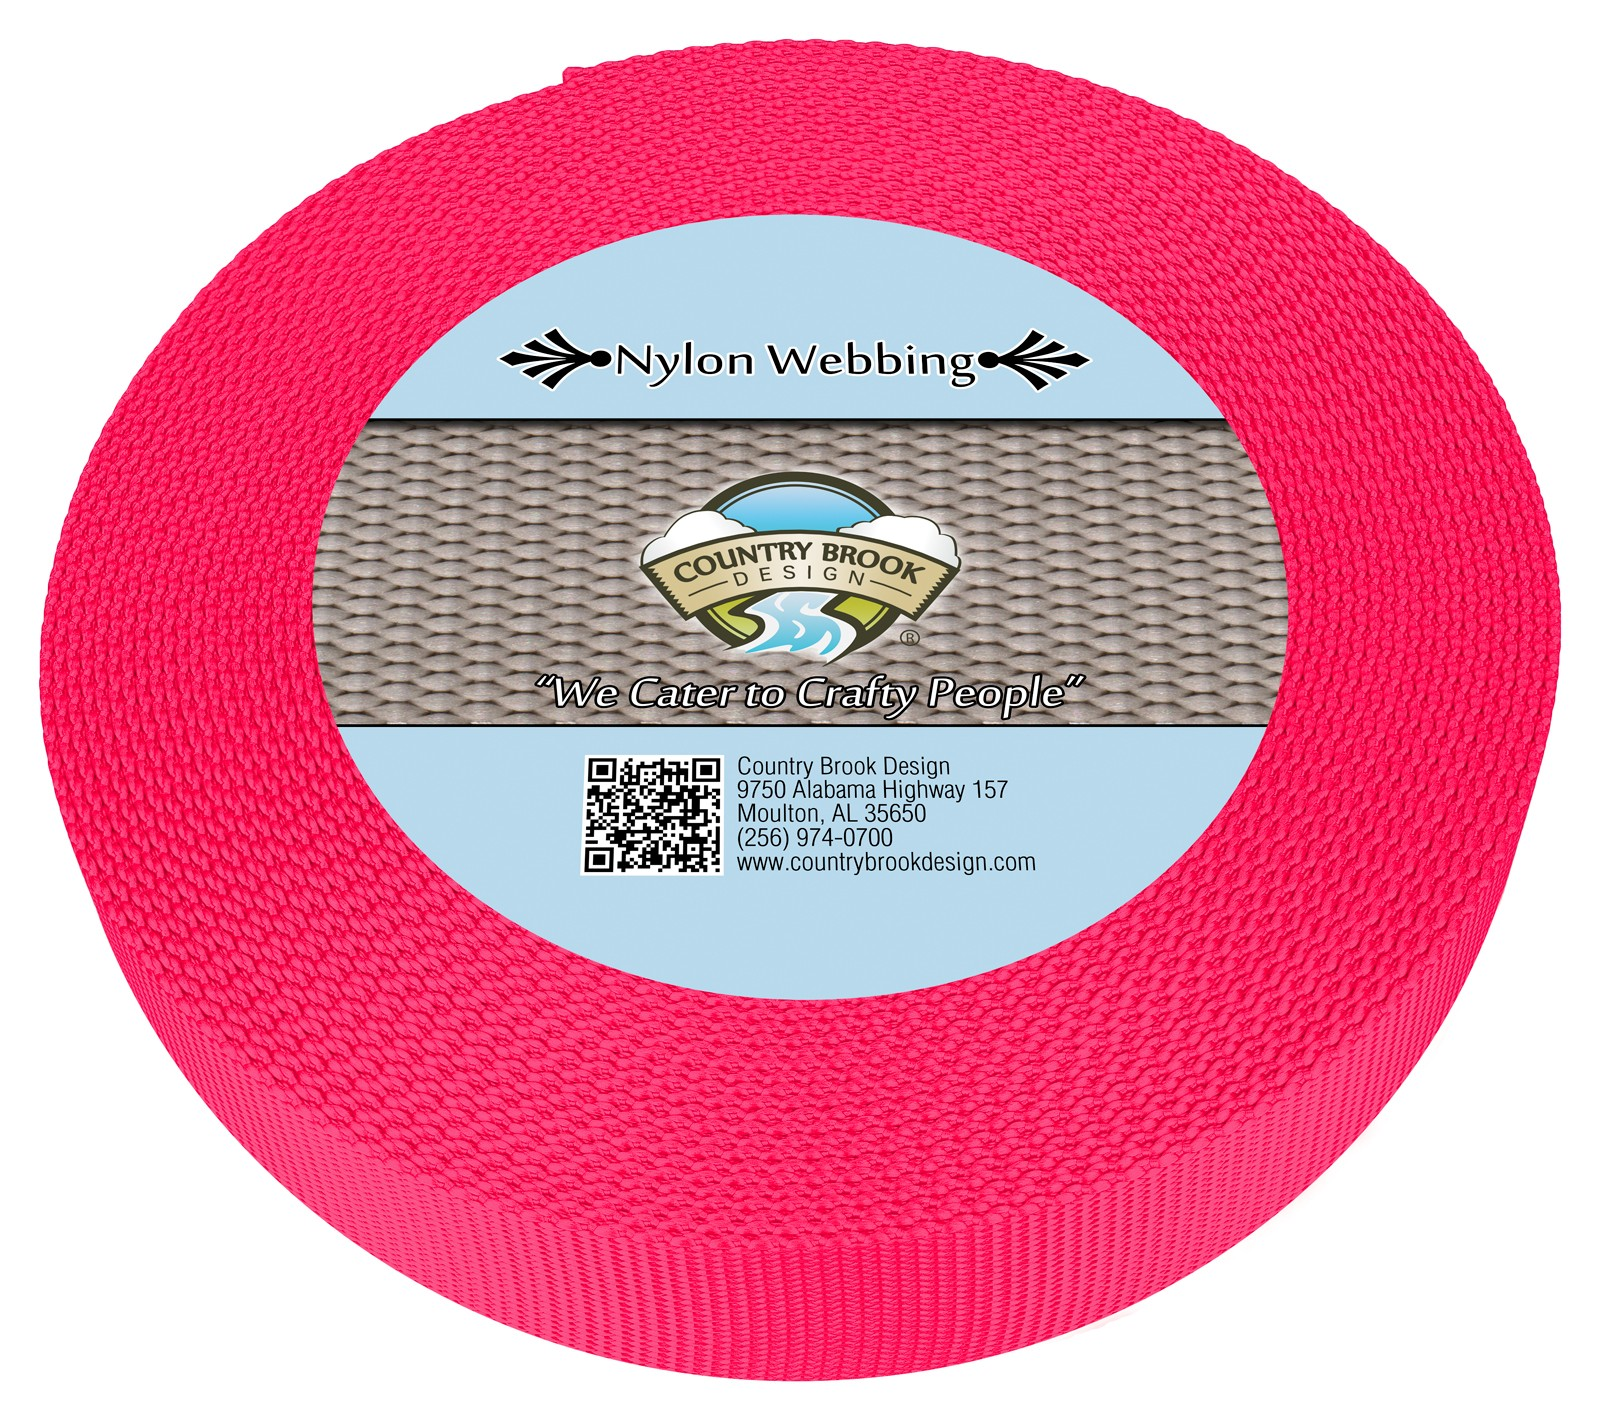 3//4 Inch Pink and White Gingham Ribbon on Hot Pink Nylon Webbing 5 Yards